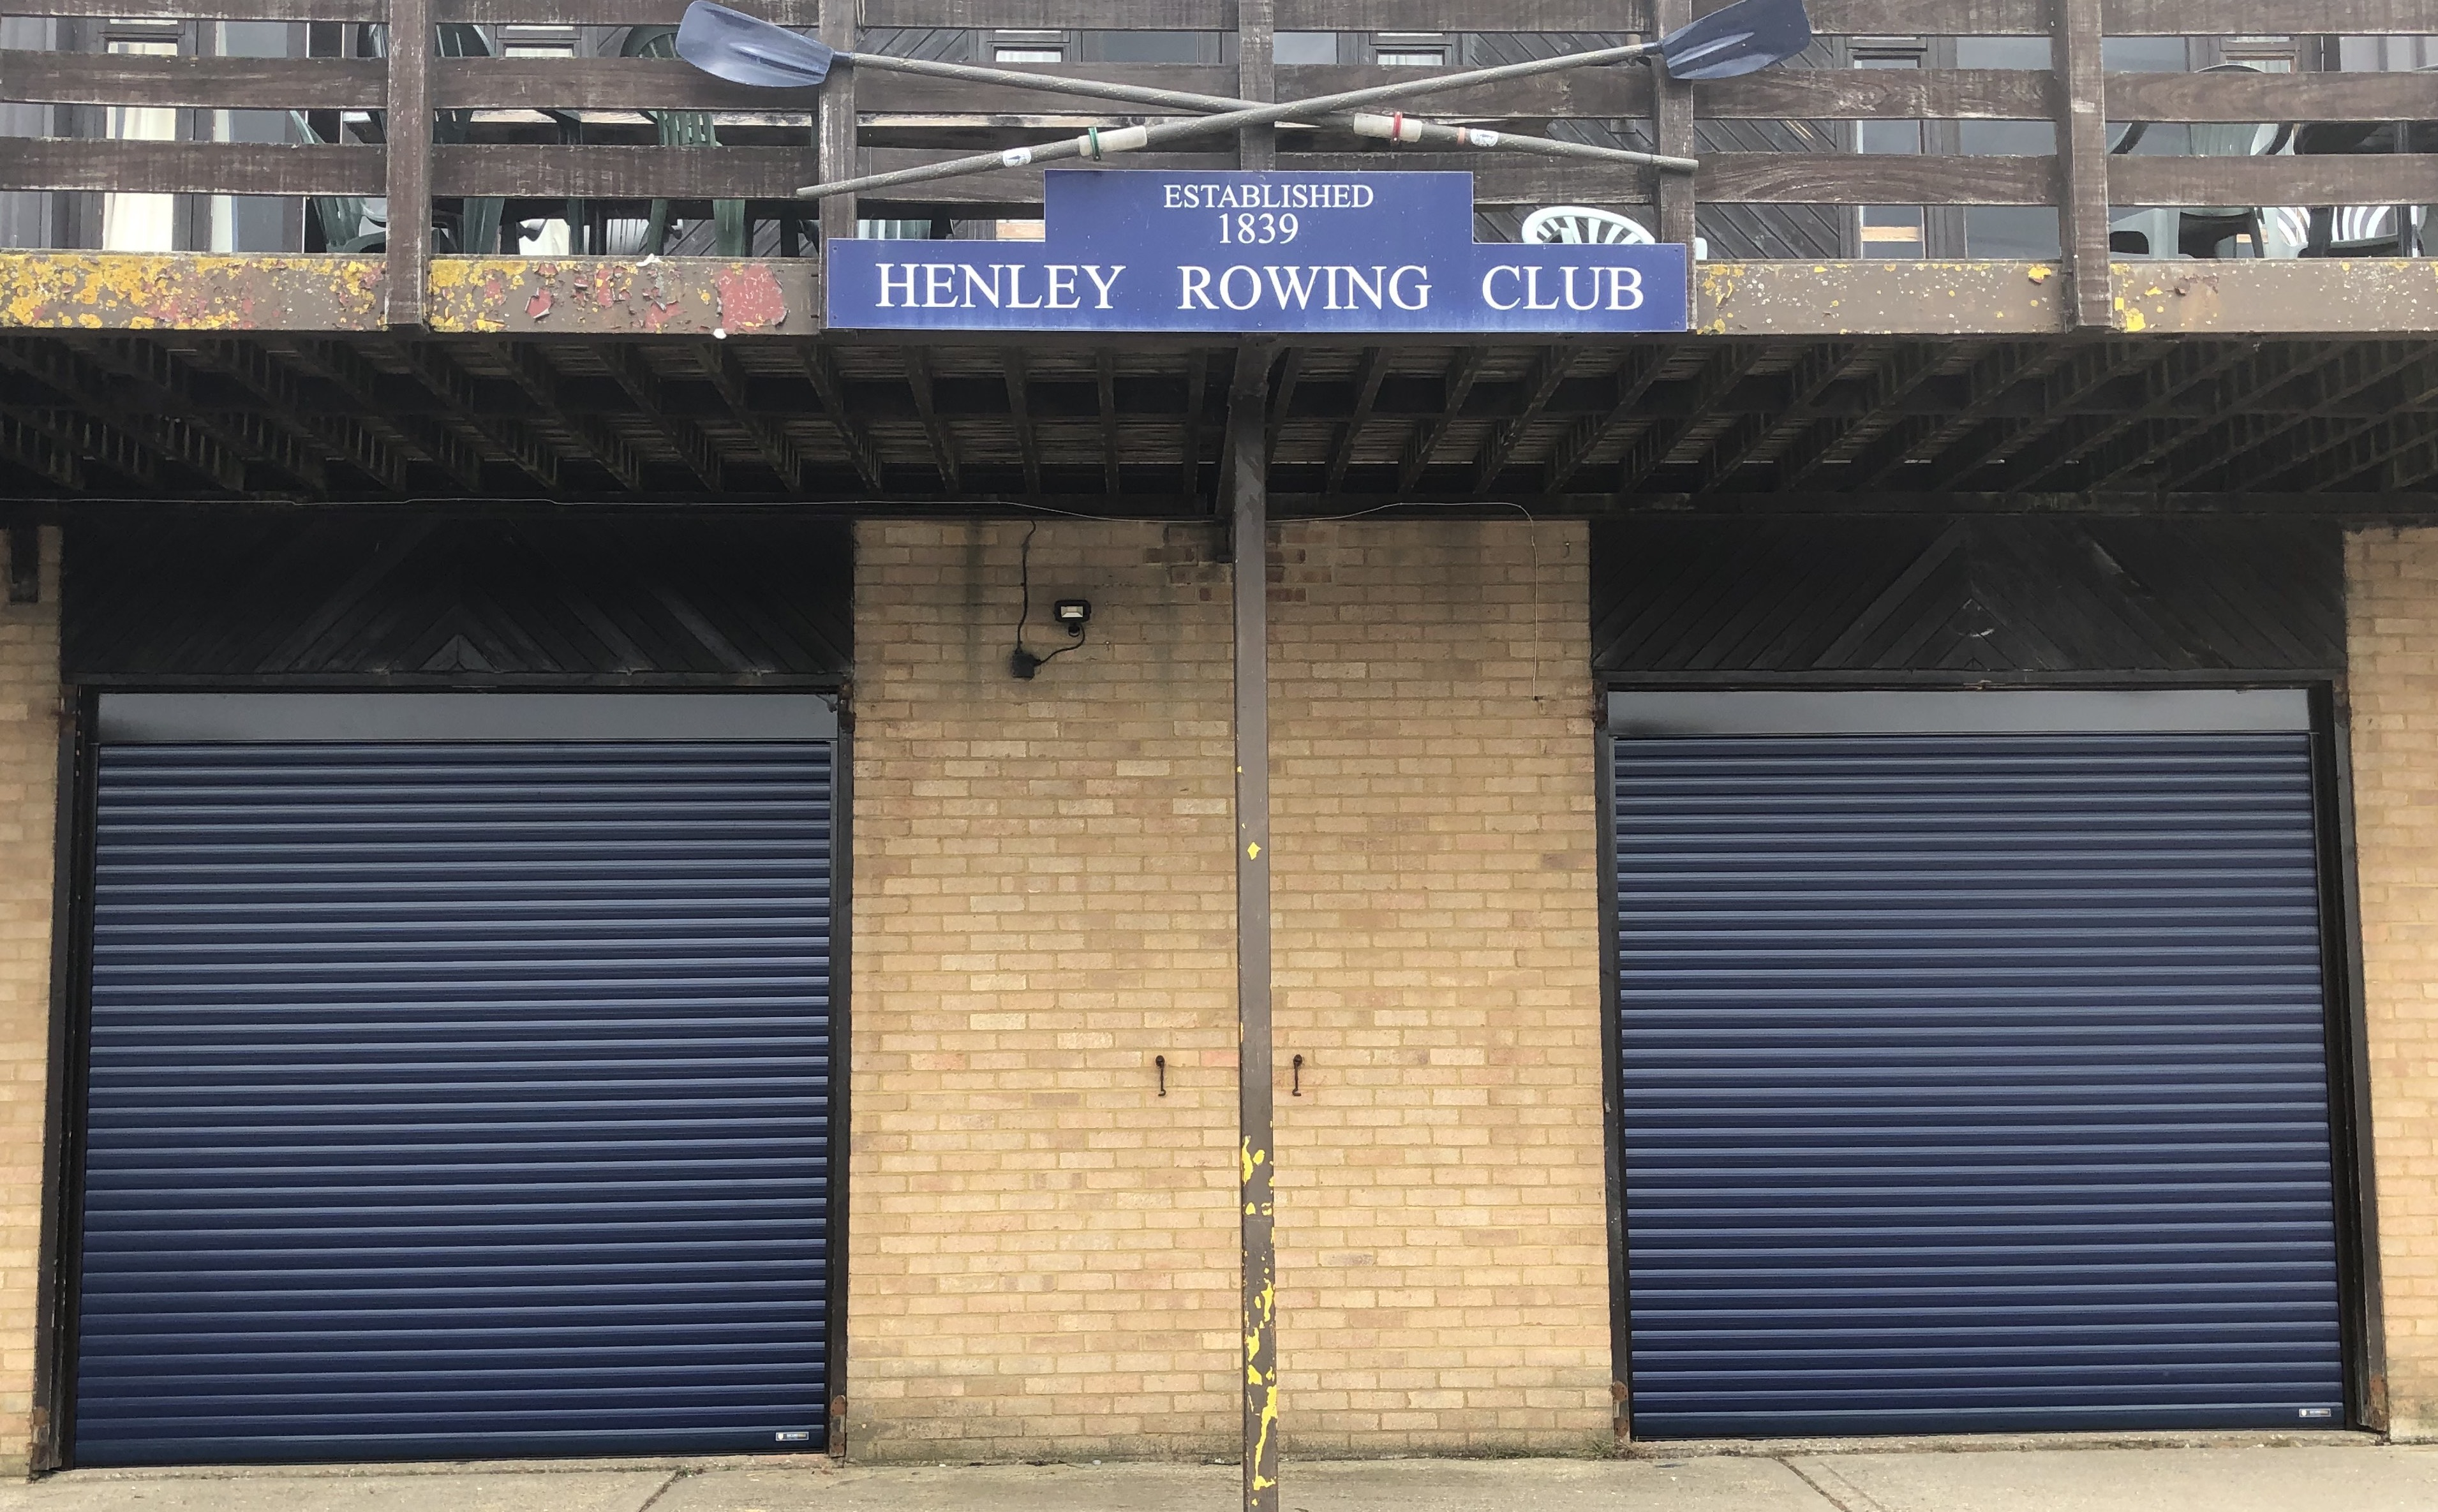 Aluroll insulated roller shutters in Steel Blue installed on a Henley Rowing Club